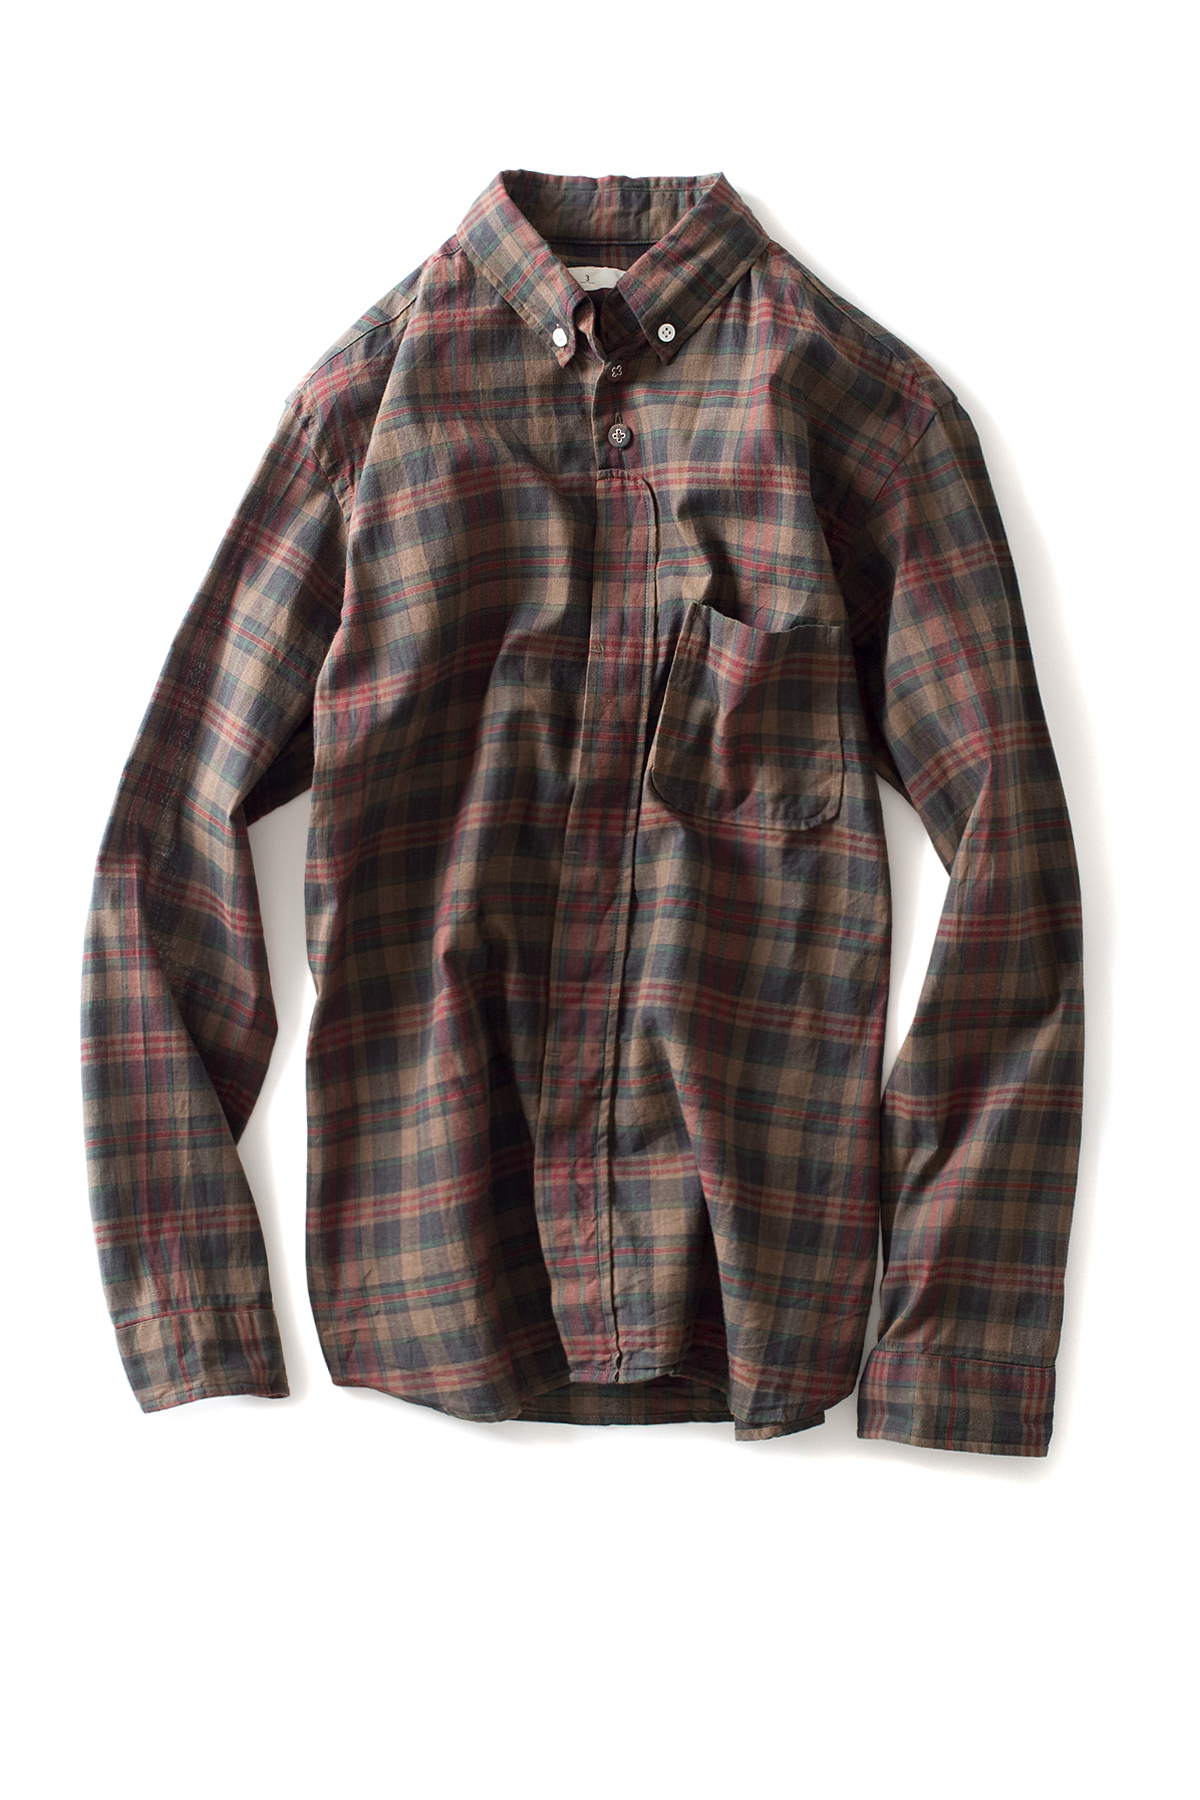 nisica : B.D Check Shirt (Brown)